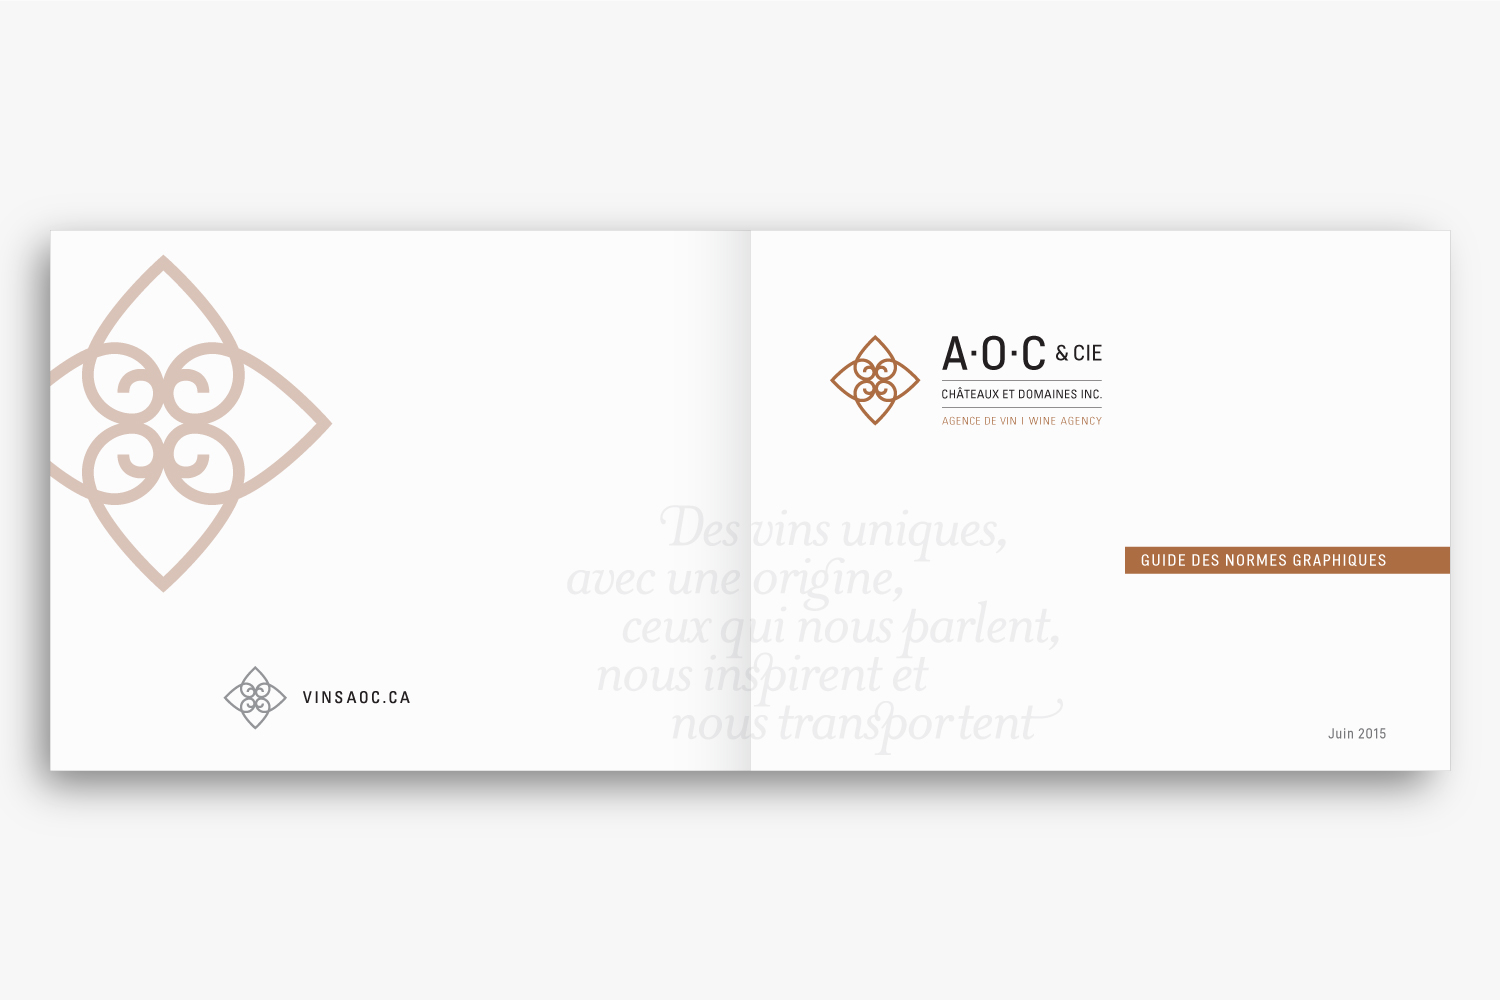 A.O.C. & CIE – Wine Agency – Identity, Web & Typography by Isabelle Robida – Infrarouge [Design & Culture] – 2015